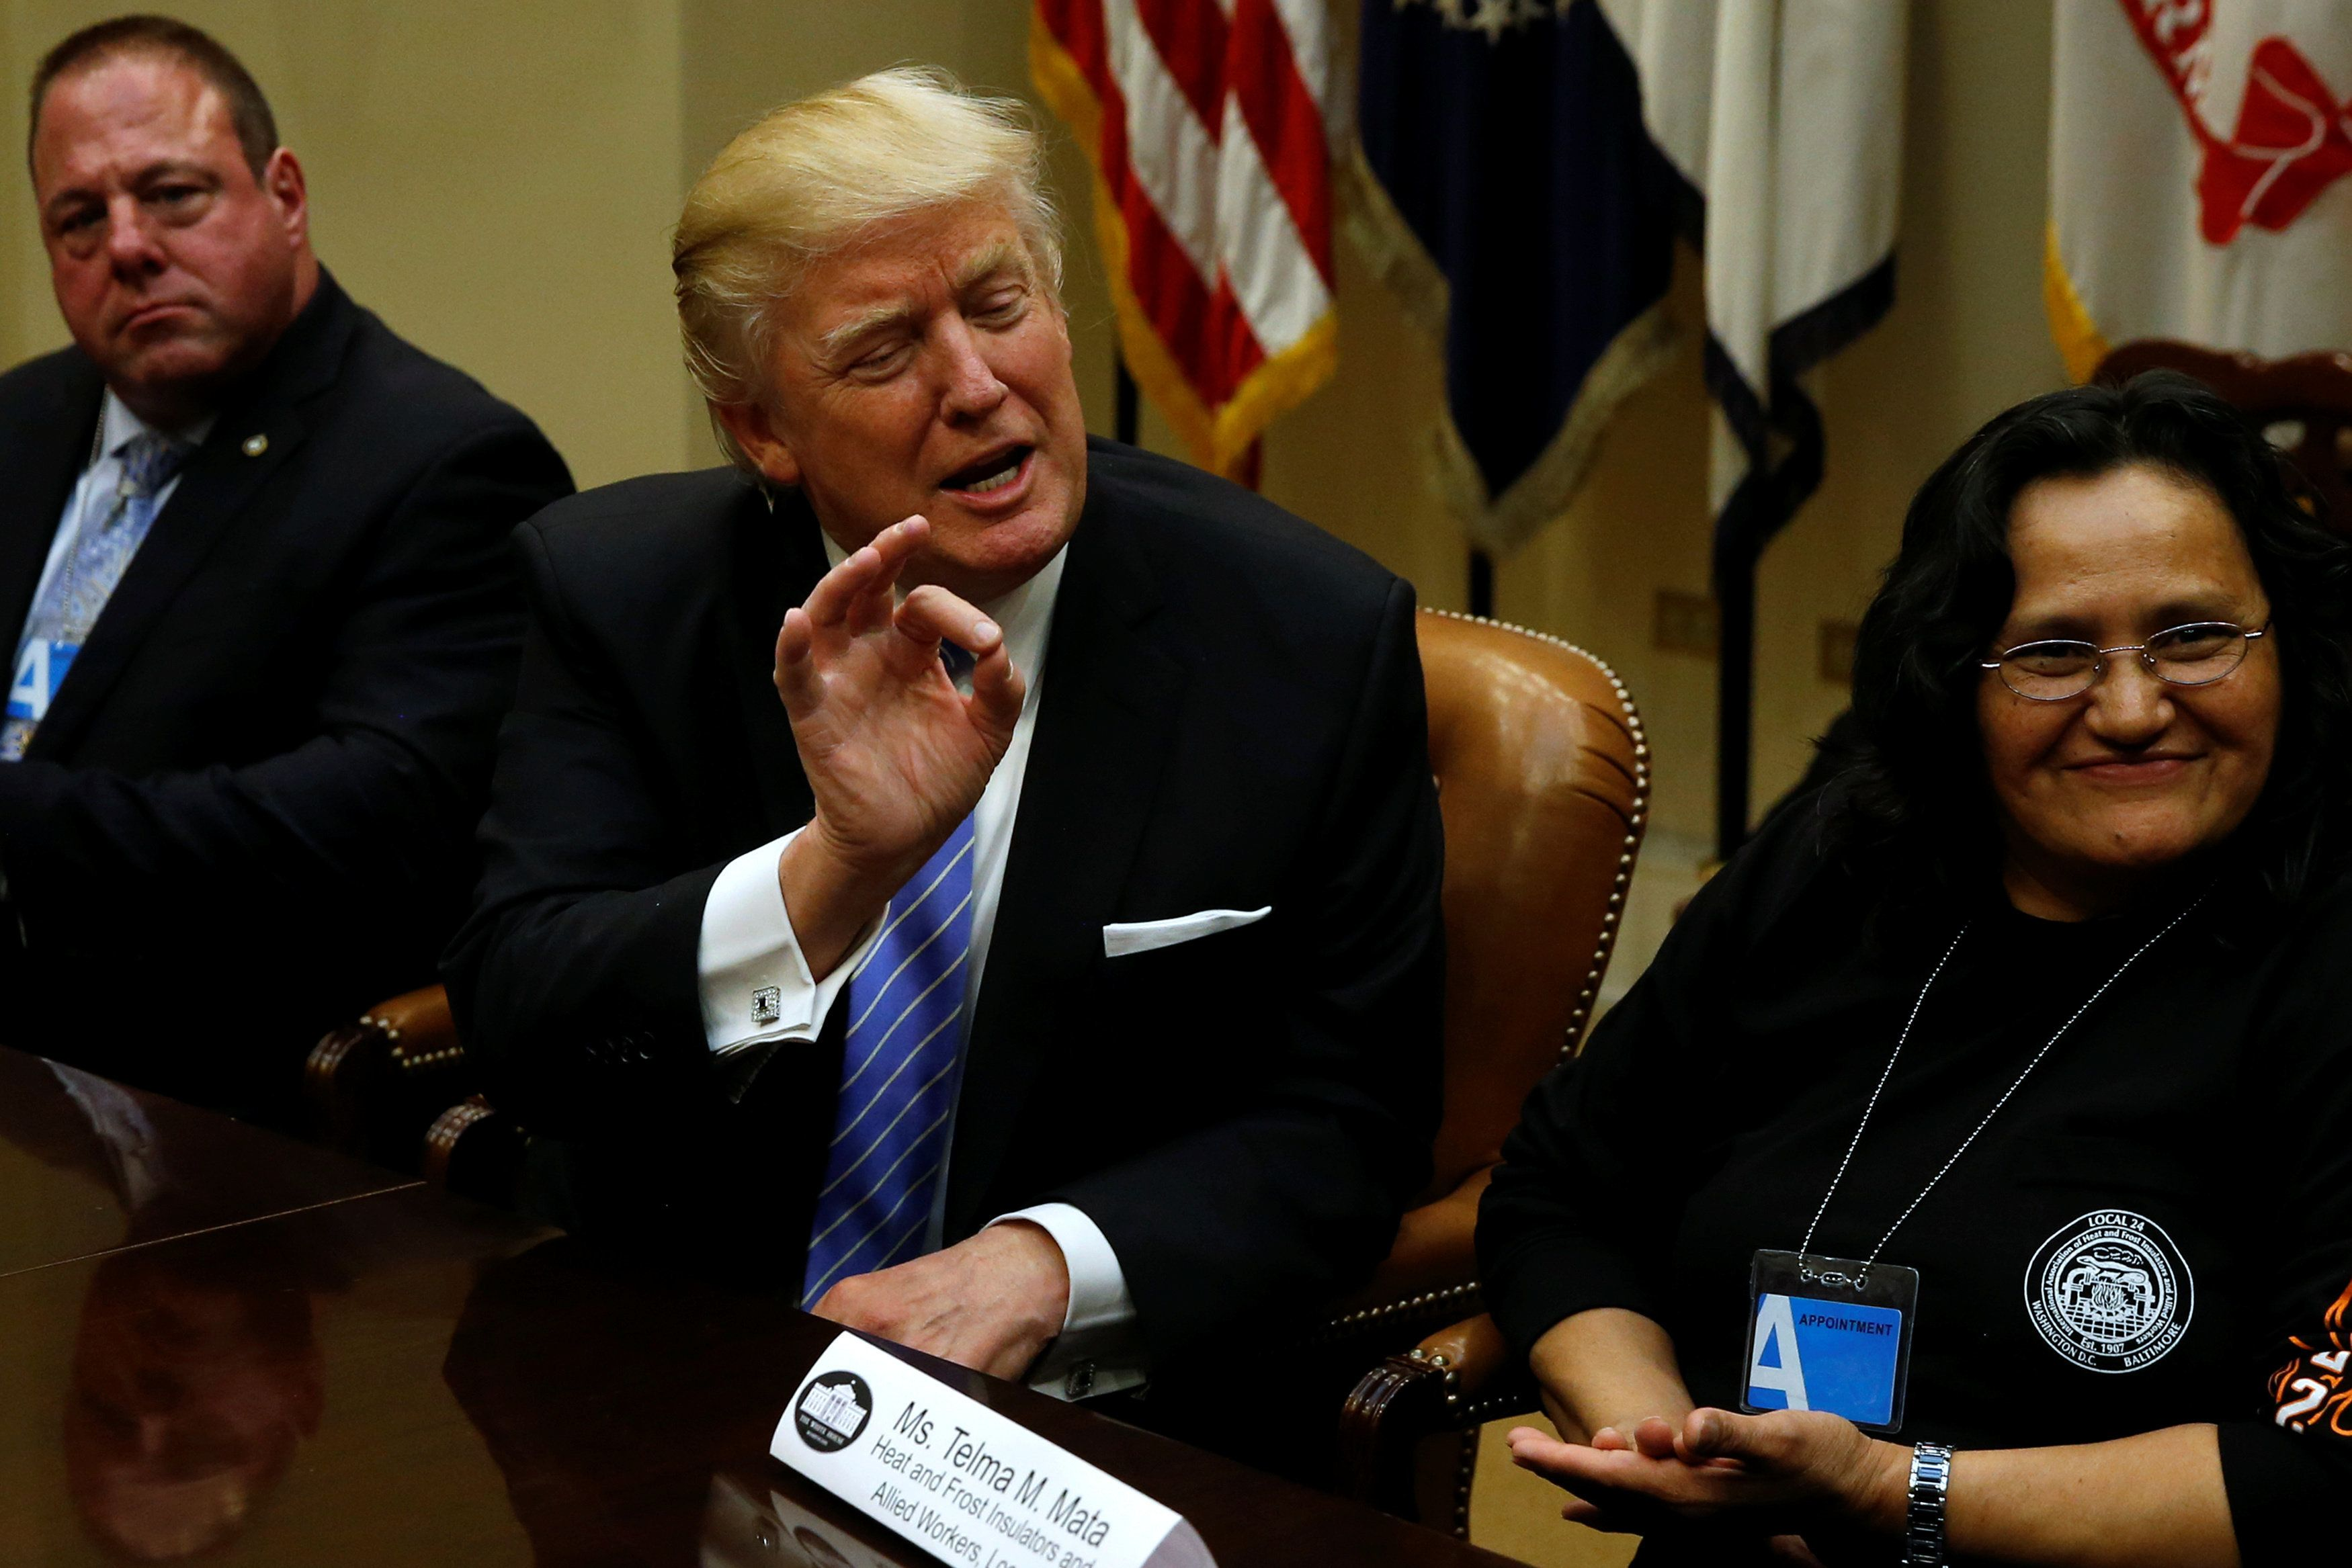 U.S. President Donald Trump (C), flanked by Gary Masino (L) of the Sheet Metal Workers Union and Telma Mata (R) of the Heat and Frost Insulators Allied Workers Local 24, holds a roundtable meeting with labor leaders at the White House in Washington, U.S. January 23, 2017.  REUTERS/Jonathan Ernst